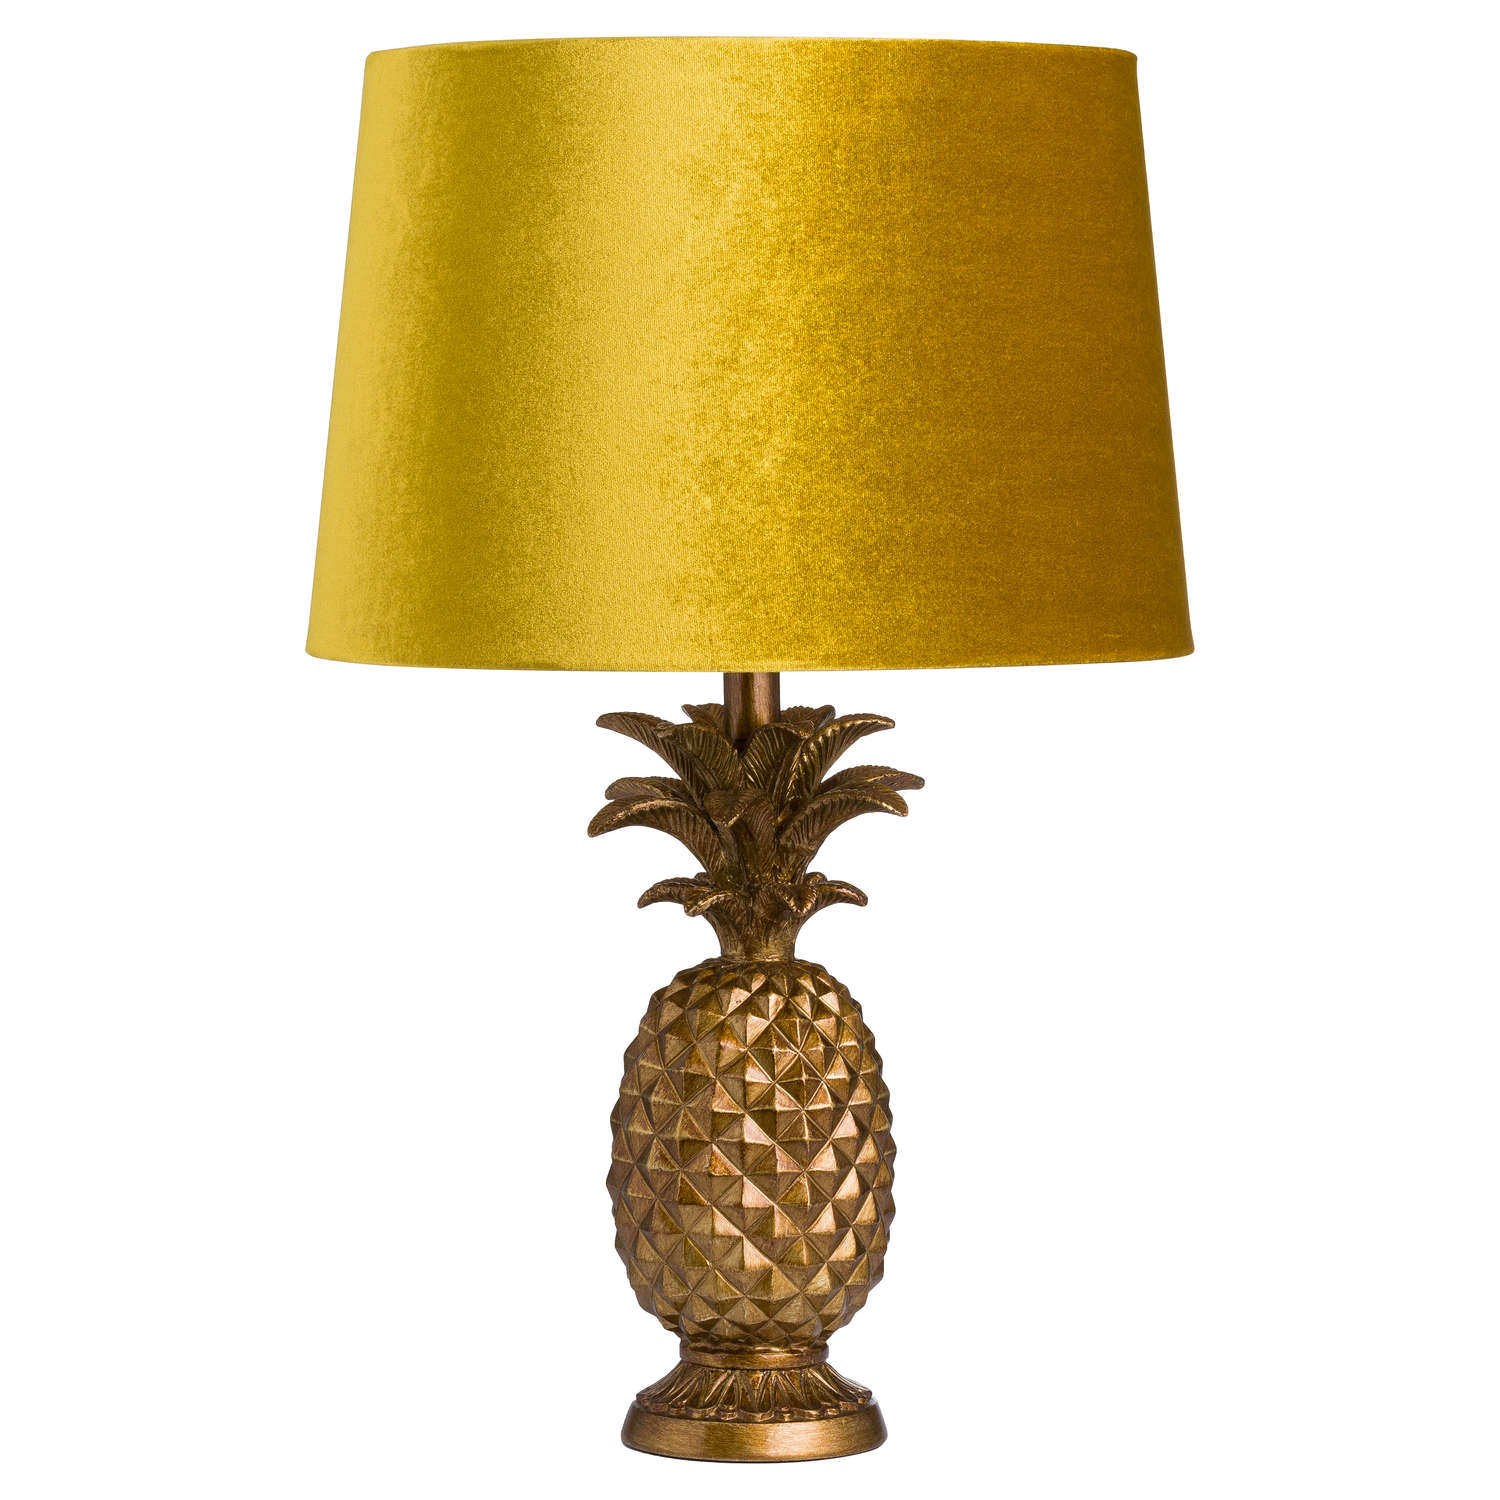 Antique Gold Pineapple Table Lamp with Mustard Velvet Shade